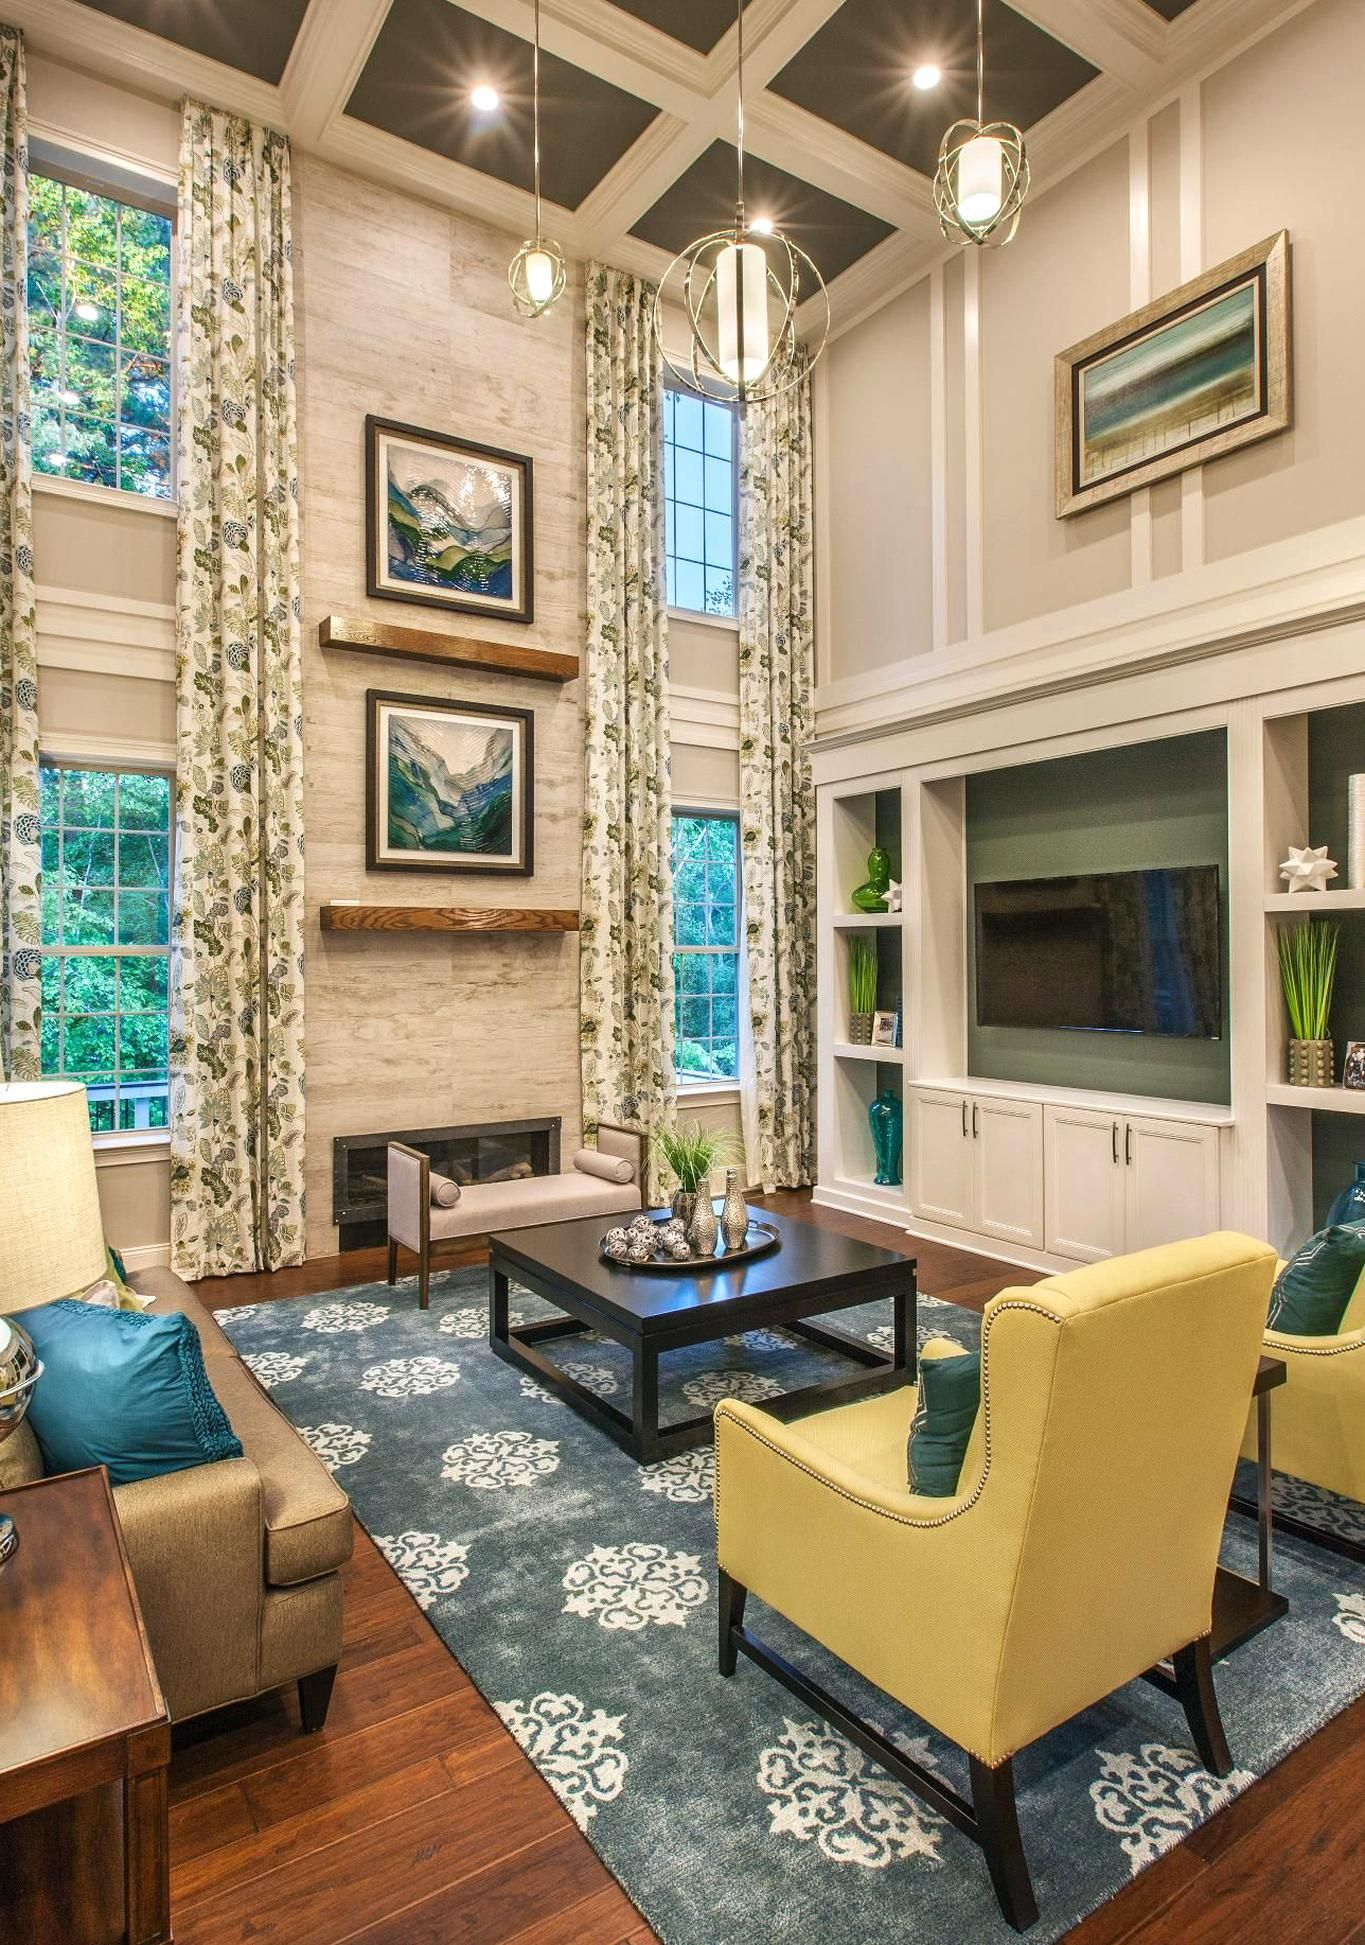 Toll Brothers at Hasentree NC in 2020 | Furniture ...